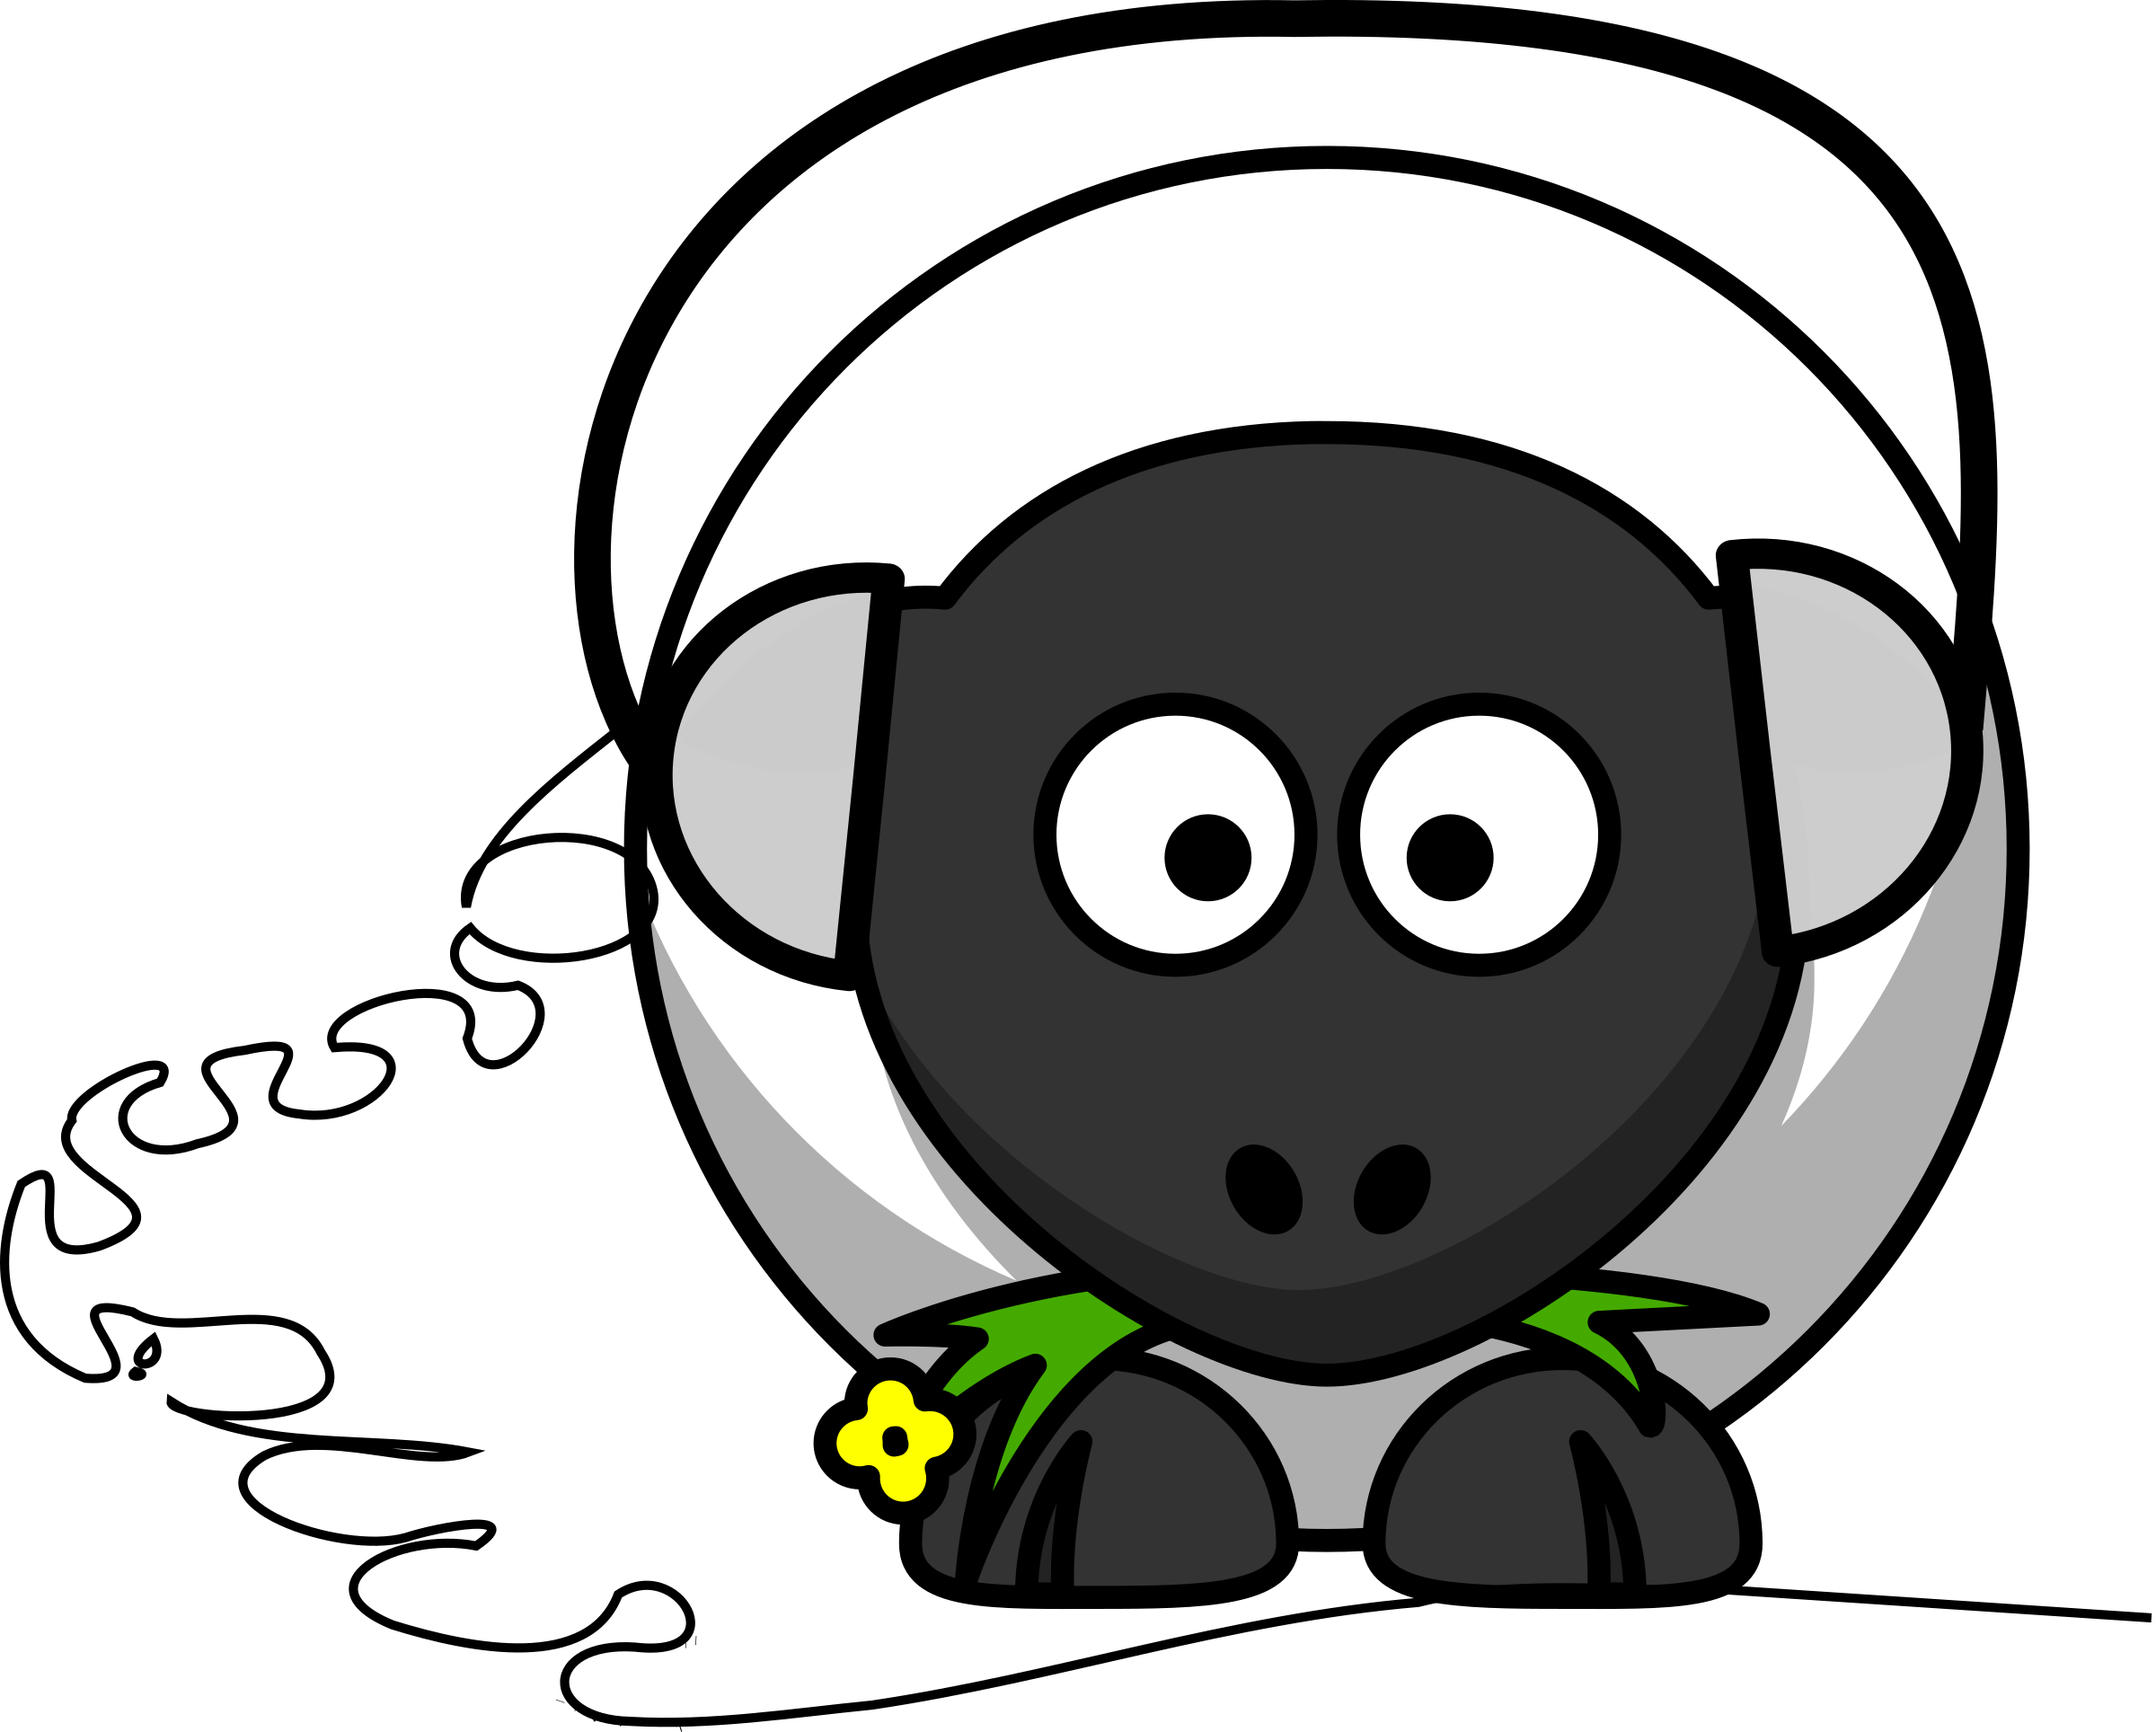 Headphones clipart face. Music sheep big image